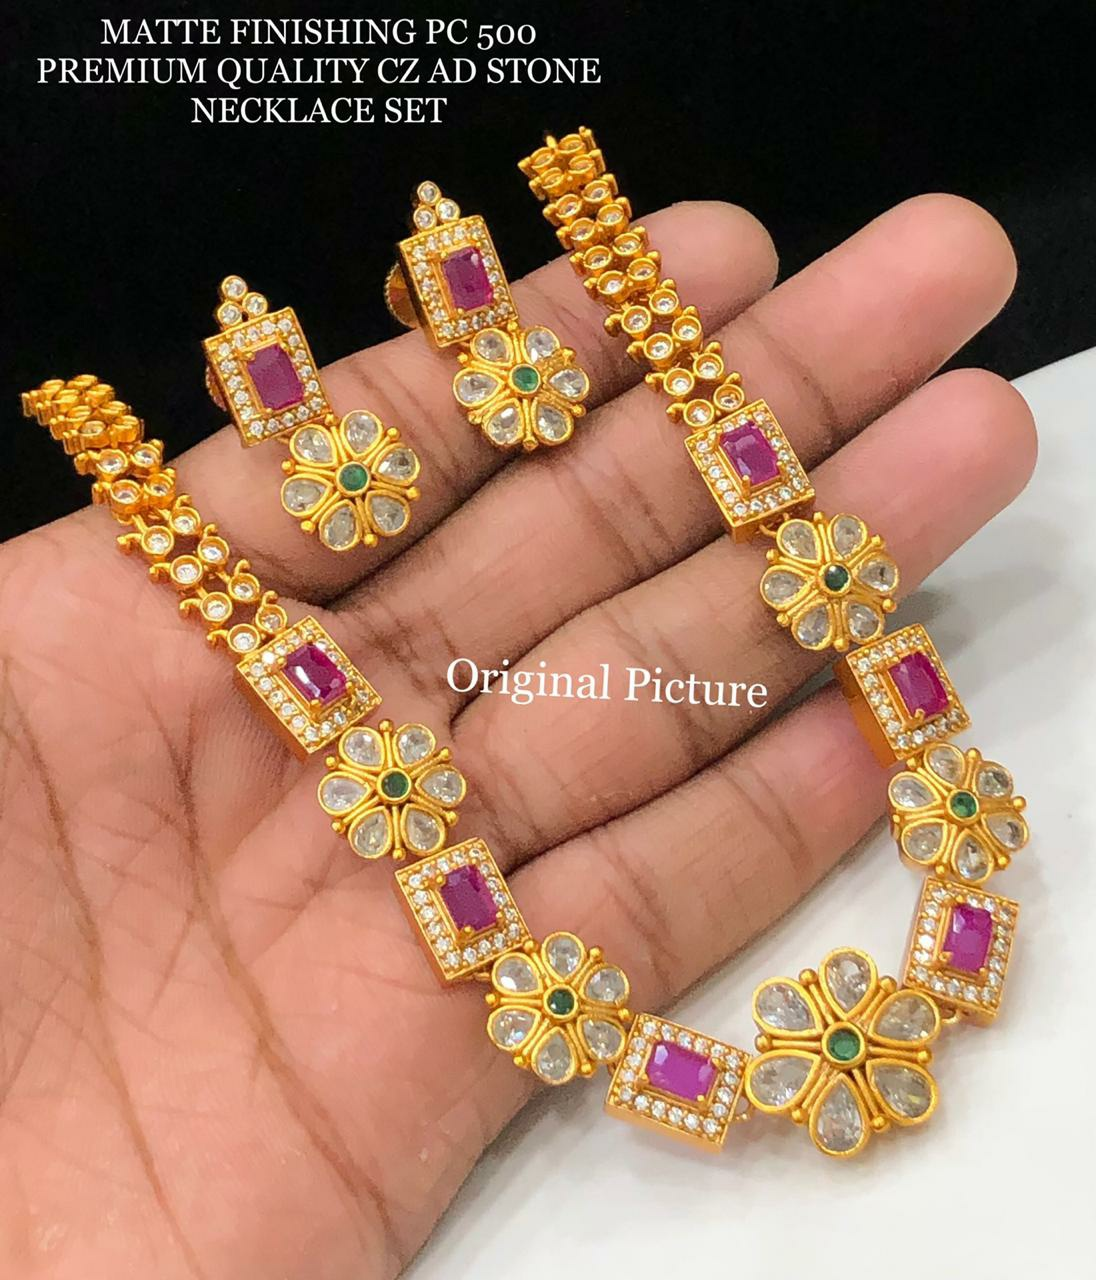 Beautiful one gram gold necklace set studded with CZ AD stones.  online 1gm gold jewellery one gram gold jewellery sets with price antique one gram gold jewellery